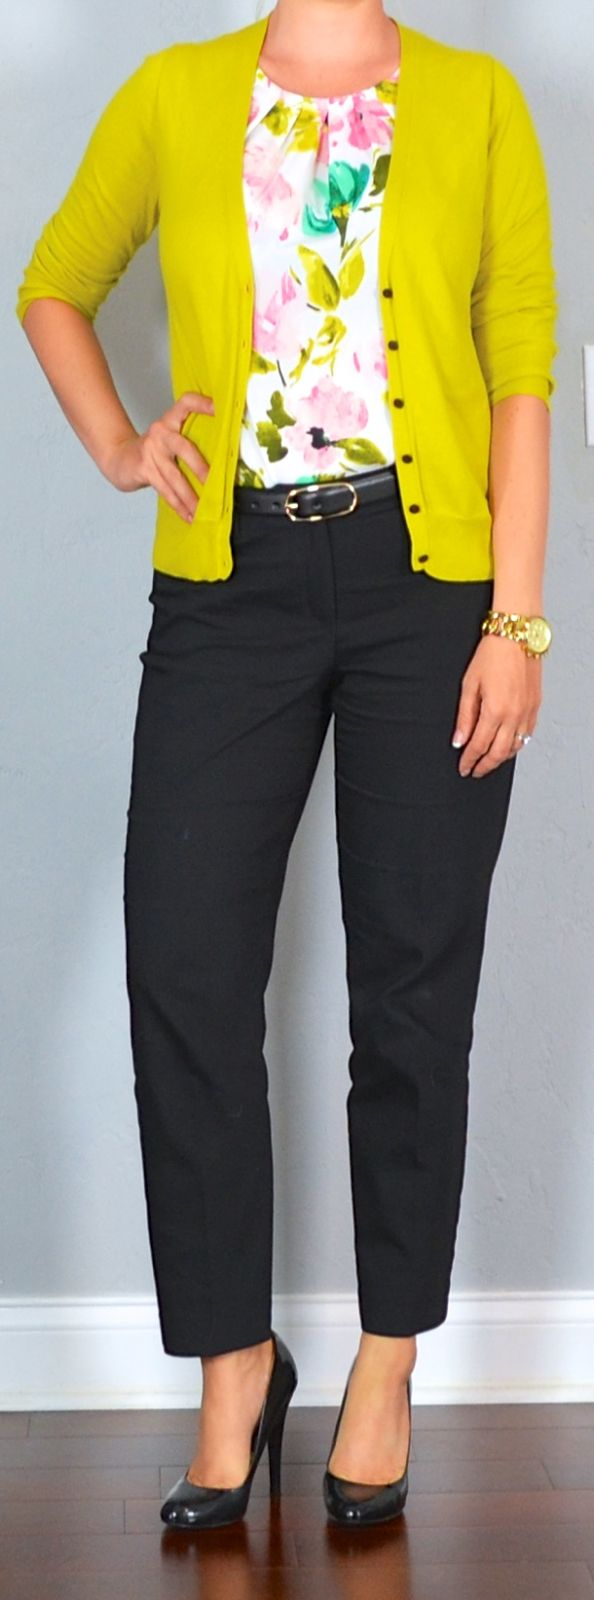 Mustard Pants Womens Outfit With Wonderful Photos In Thailand U2013 Playzoa.com